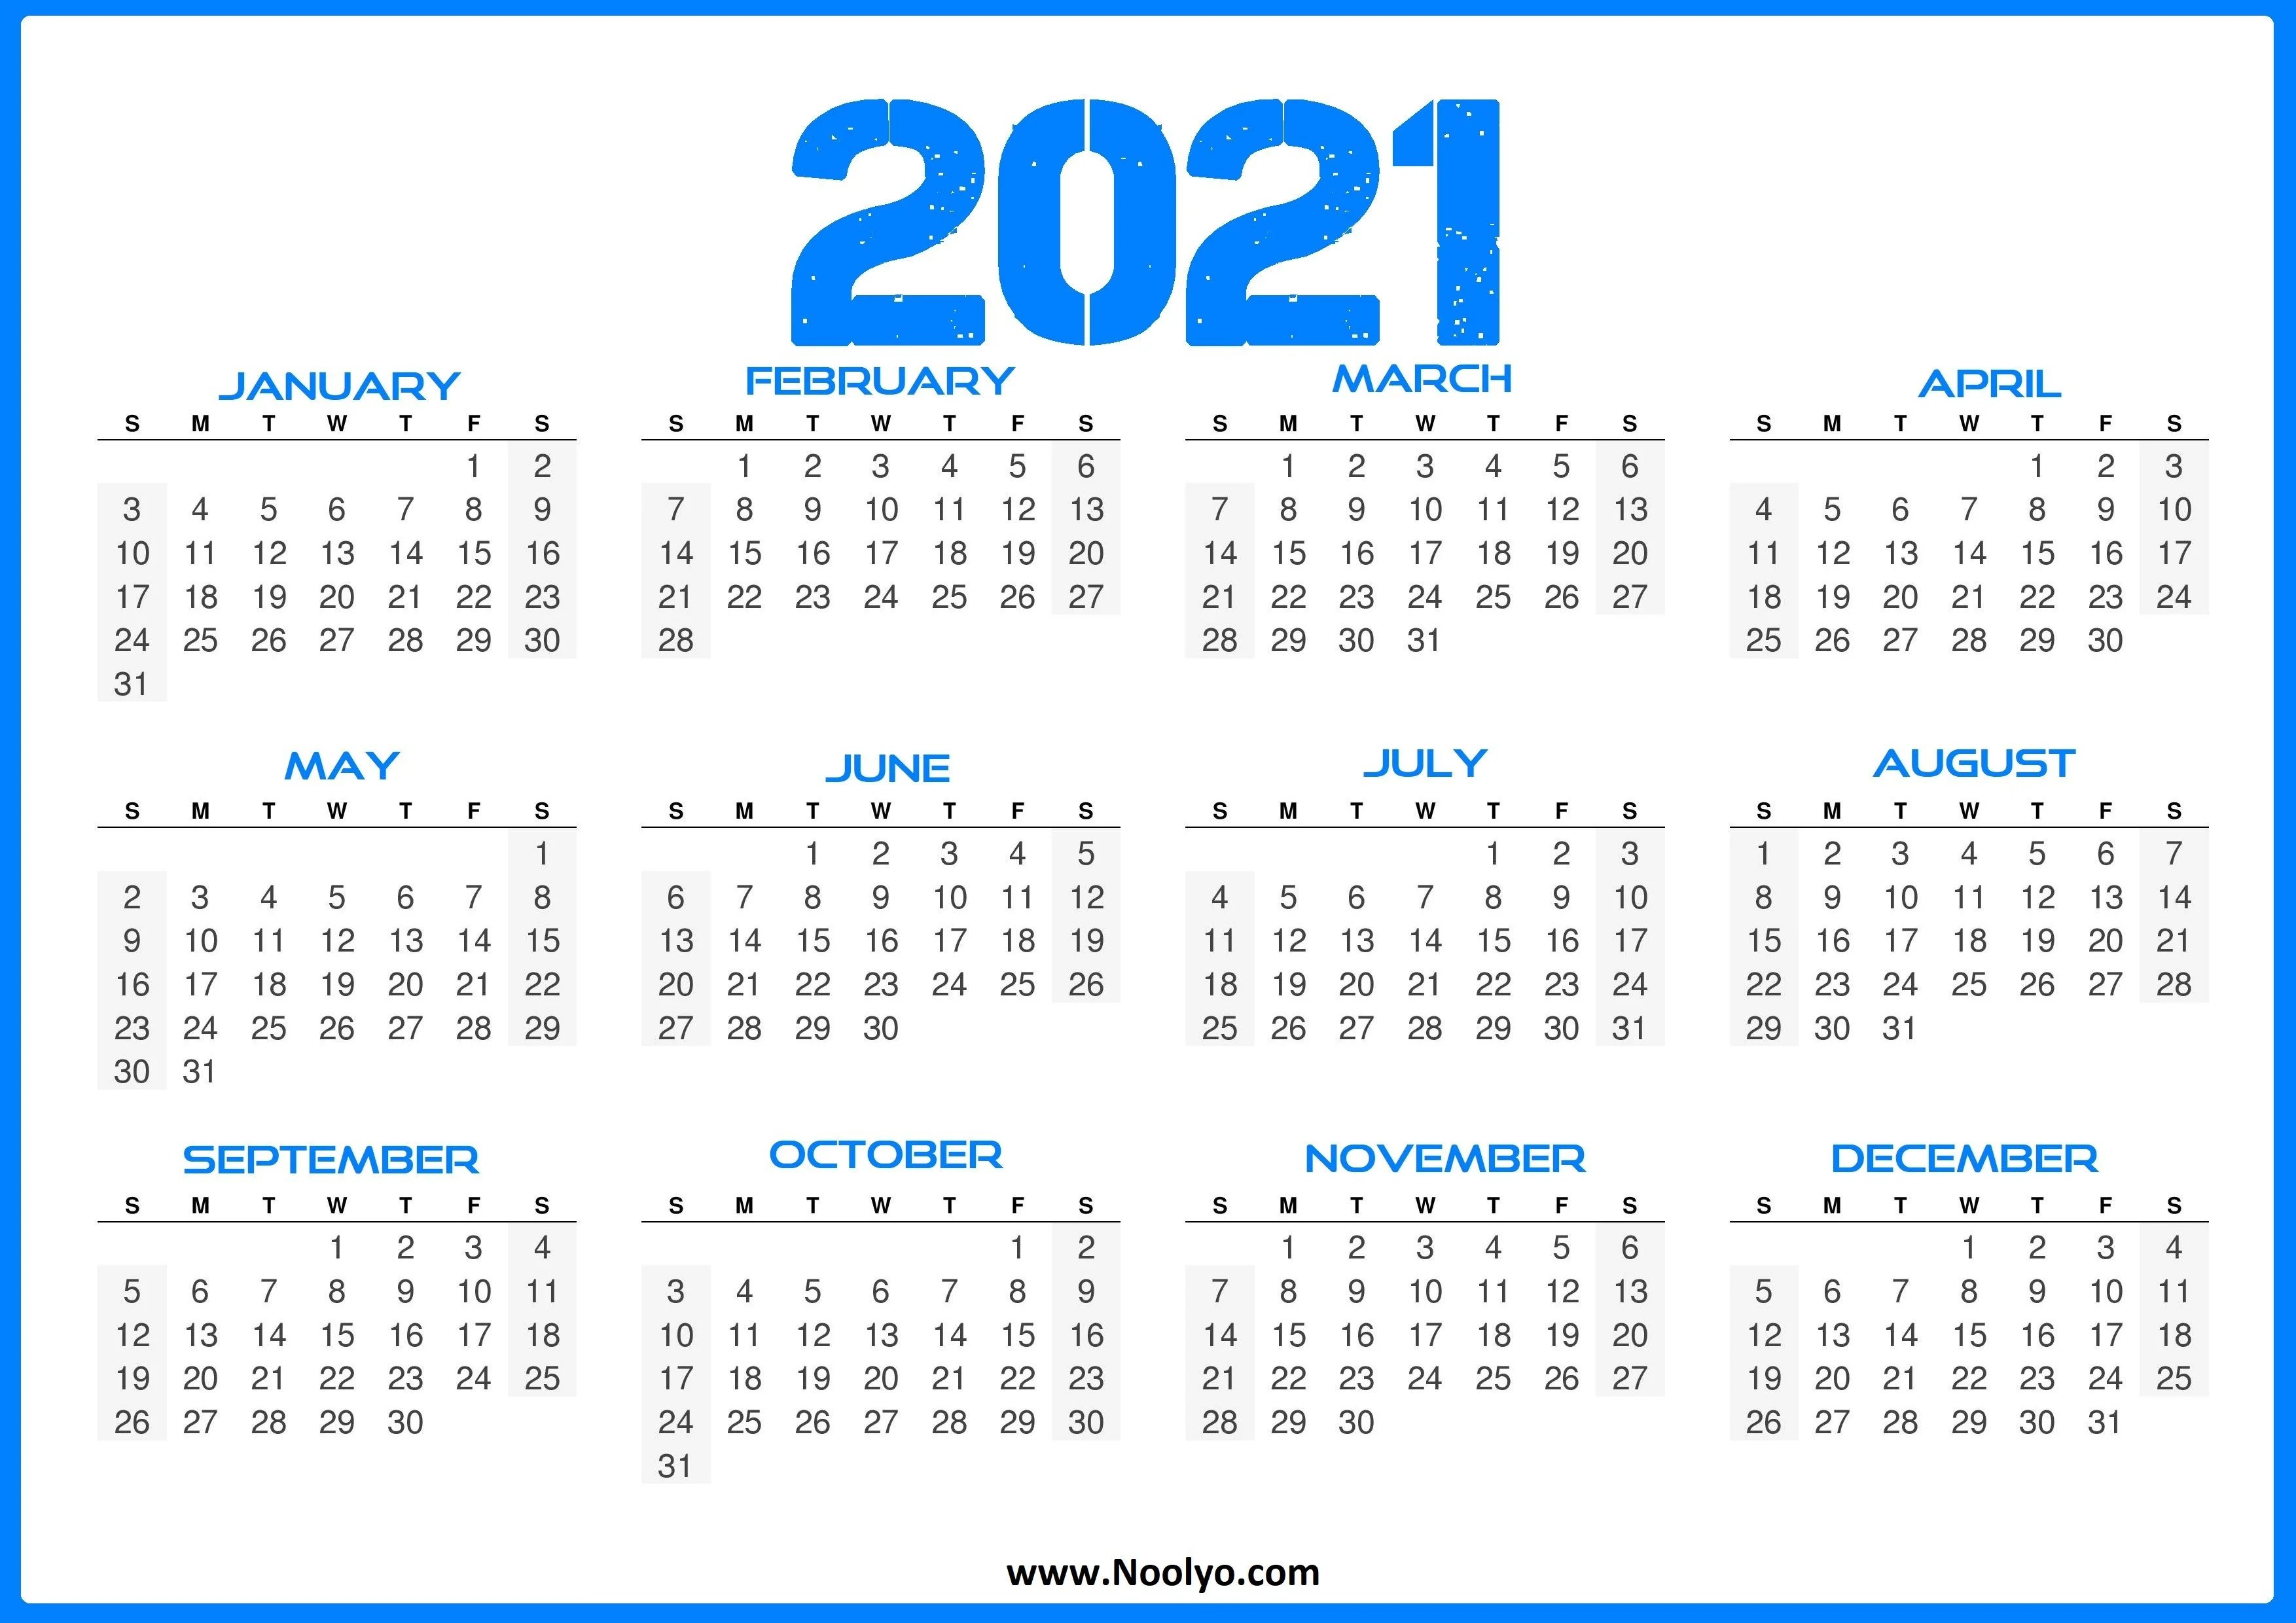 Download monthly & weekly printable calendars for 2021 — … Calendar 2021 Wallpapers - Wallpaper Cave